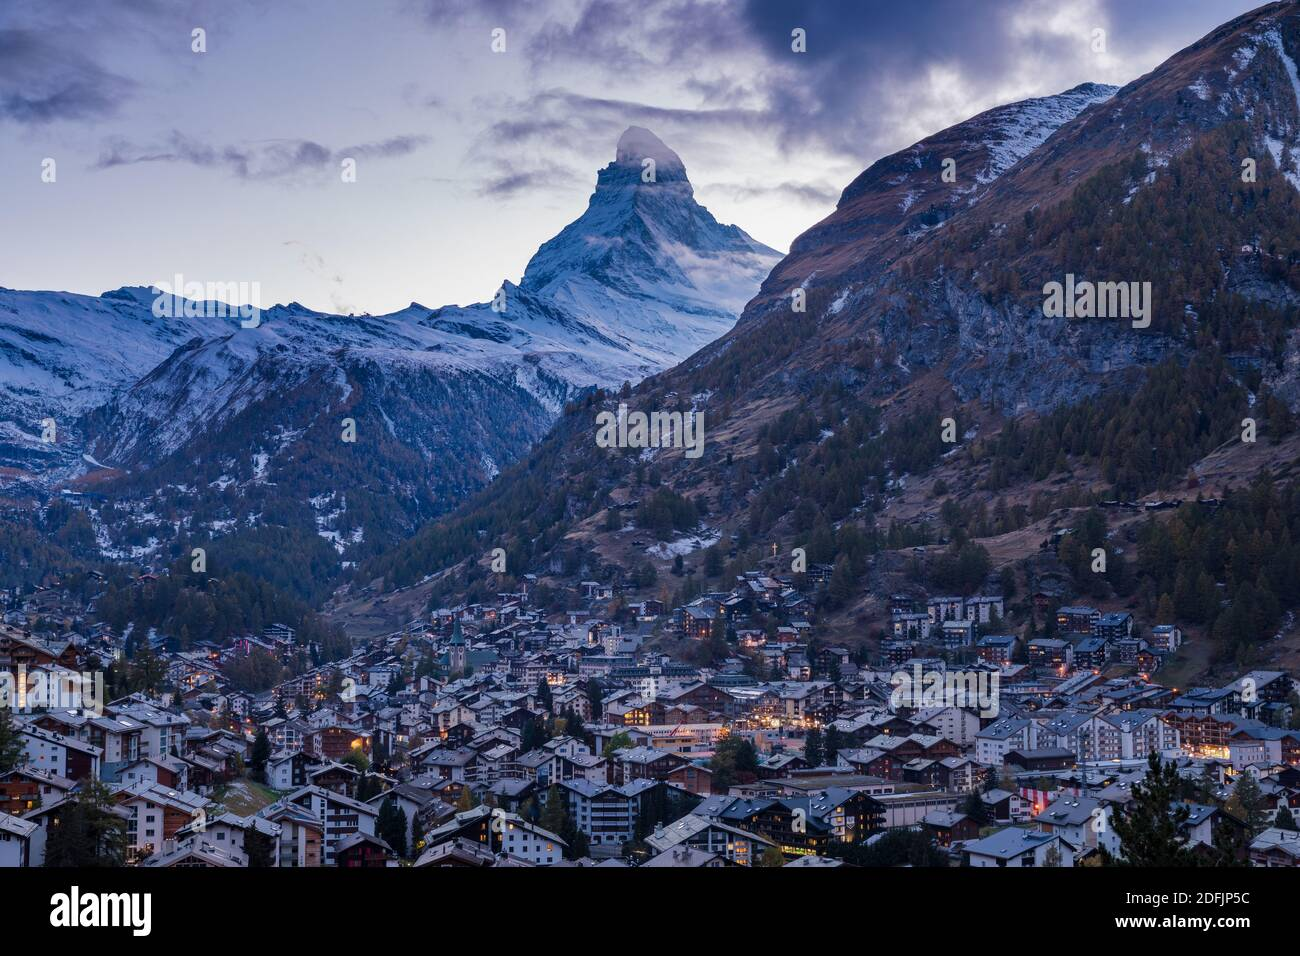 The Swiss village of Zermatt in Valais in autumn at dusk, with the Matterhorn and the Alpine mountain range in the background. Stock Photo